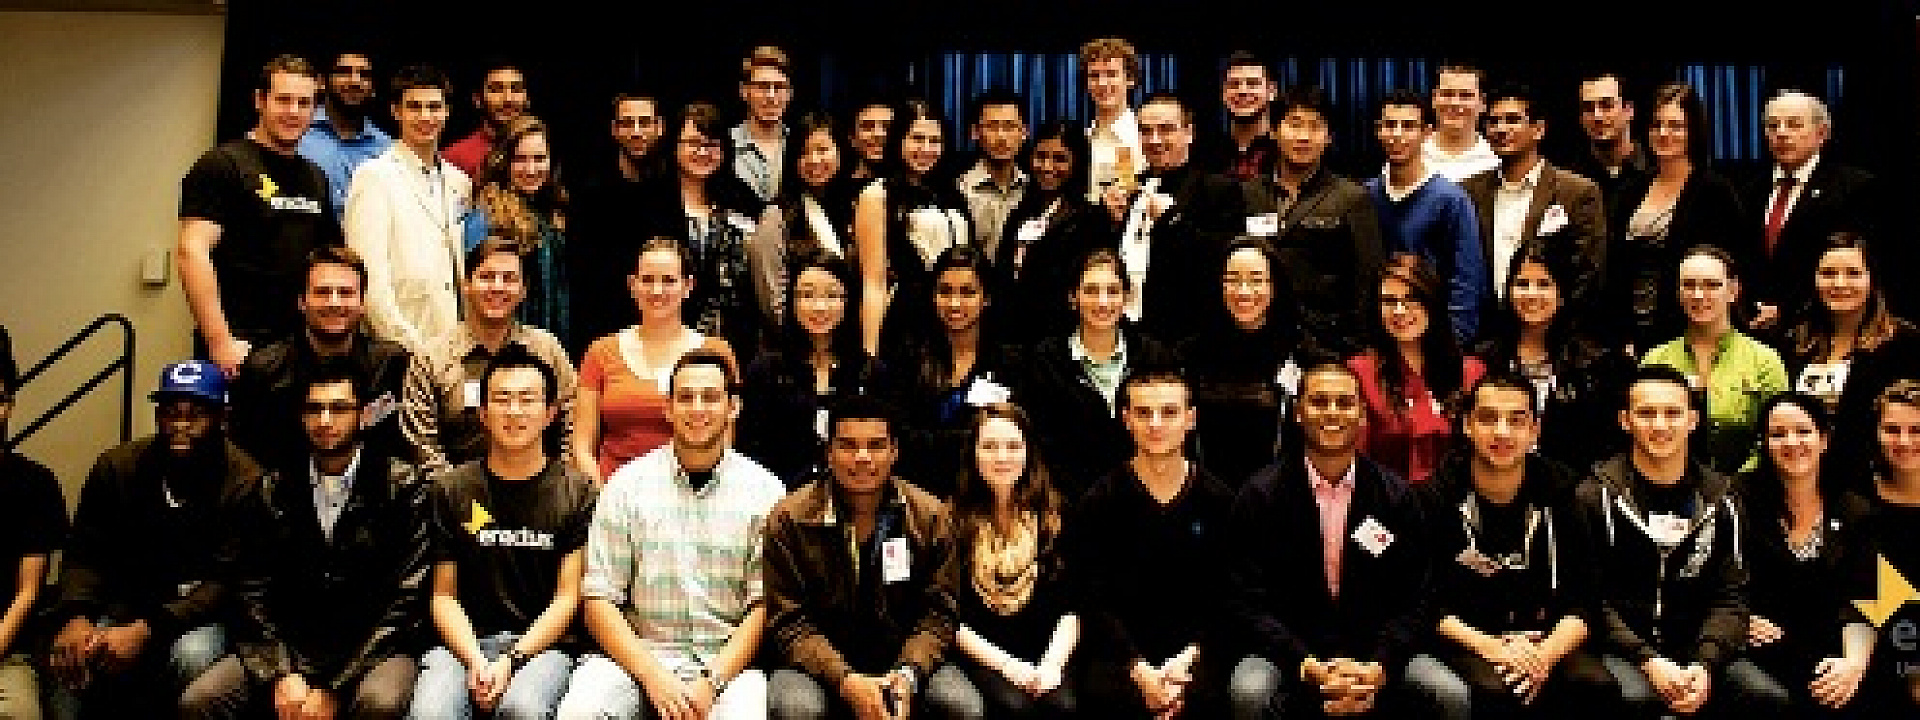 Enactus uOttawa welcomed teams from all across Eastern Ontario & Quebec to the organization's annual leadership retreat